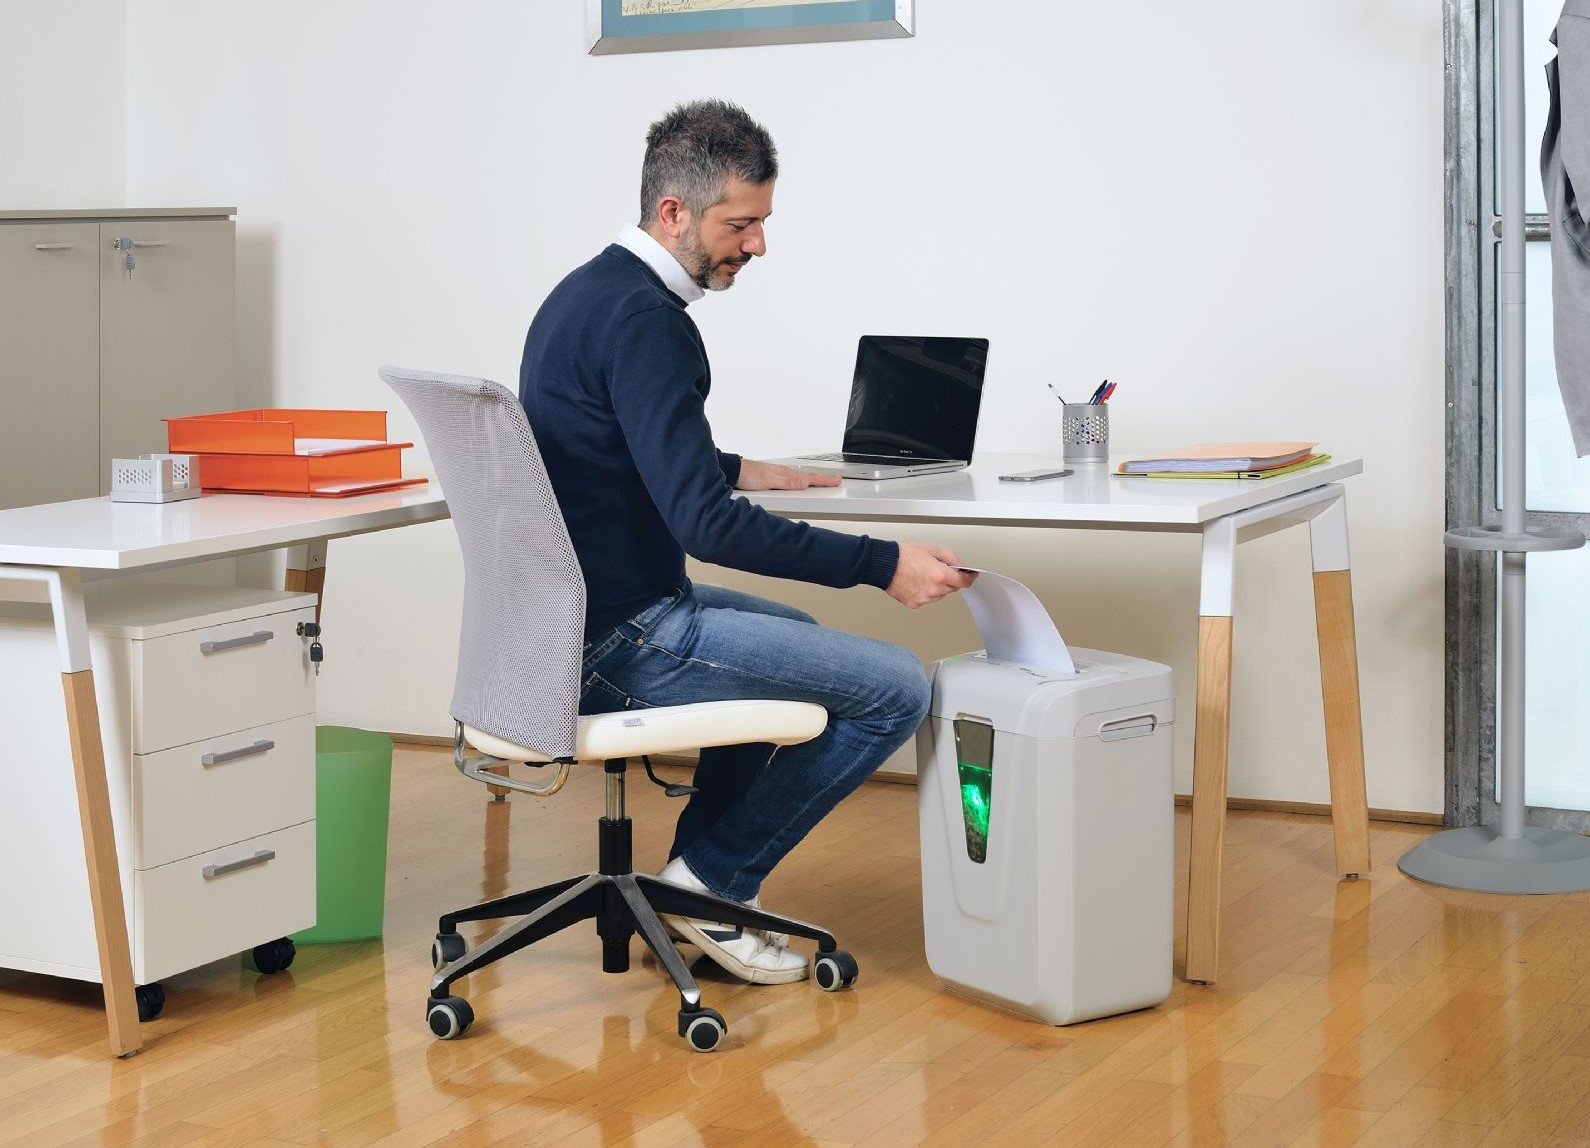 Person uses shredder in their office